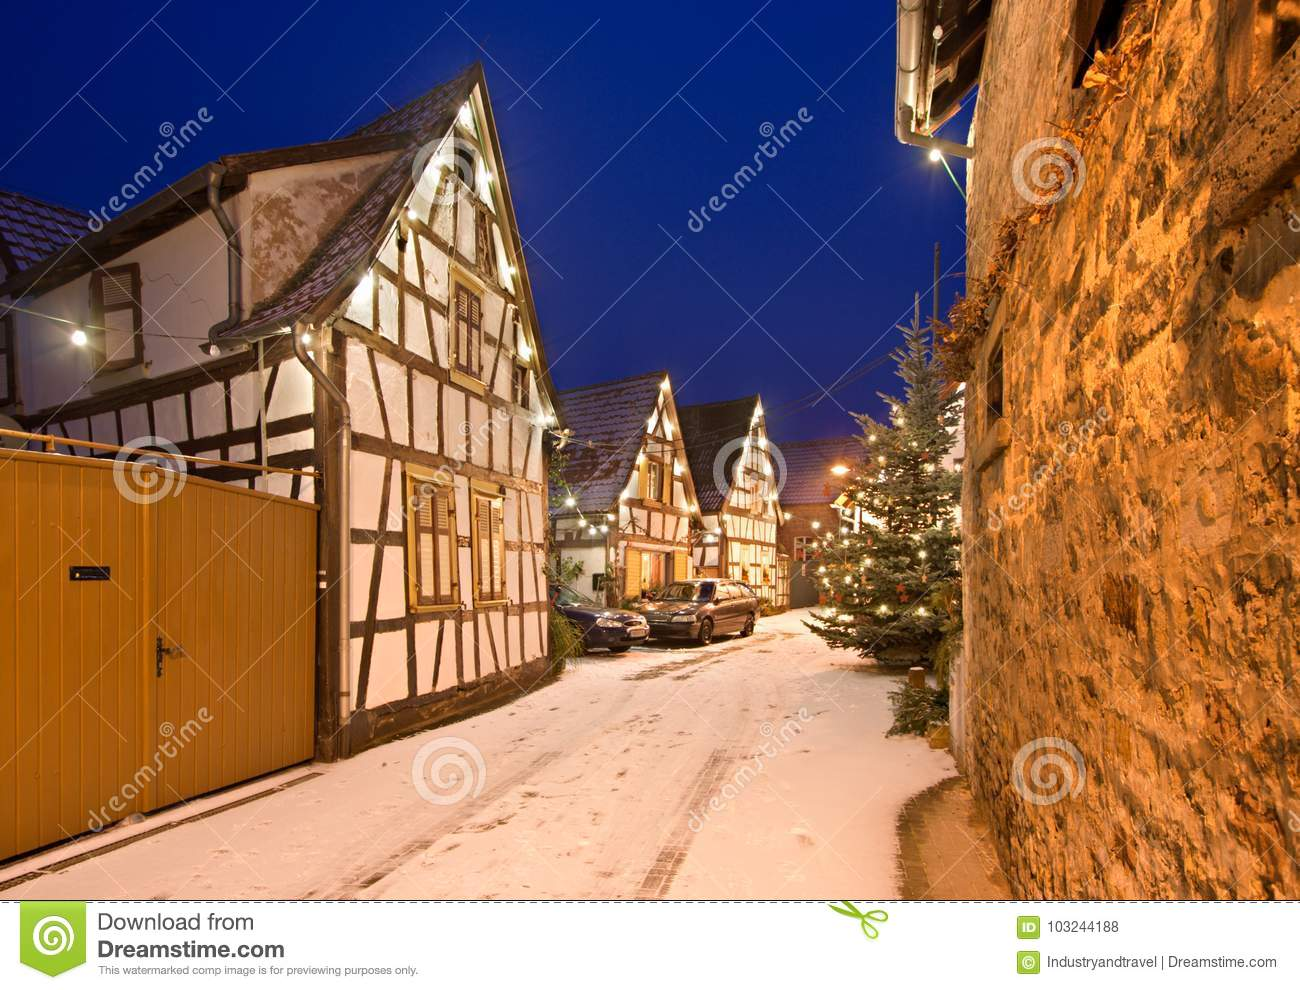 Christmas Village In Germany.Christmas Village Germany Stock Photo Image Of Germany